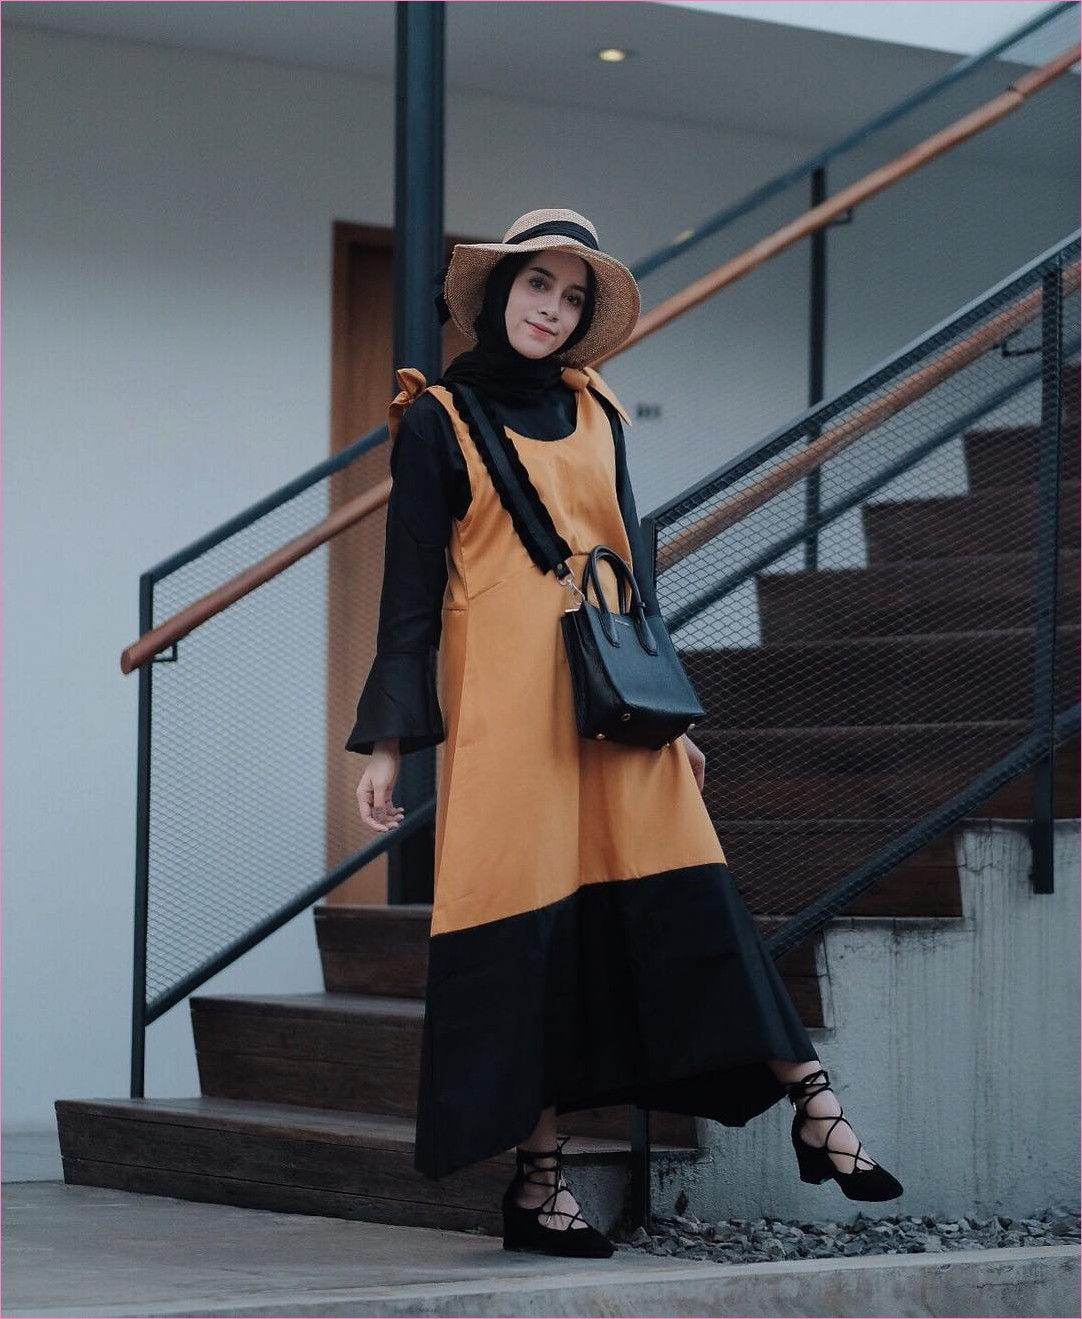 Mix And Match Outfit Baju Luaran (Inner) 2018 Ala Selebgram_dres tanpa lengan_slip dress kuning tua_top_blouse lengan terompet_handbags_hijab_pashmina rawis_ankle boots_cleopatra boots_flatshoes hitam_topi pantai_ootd_trendy_tangga coklat